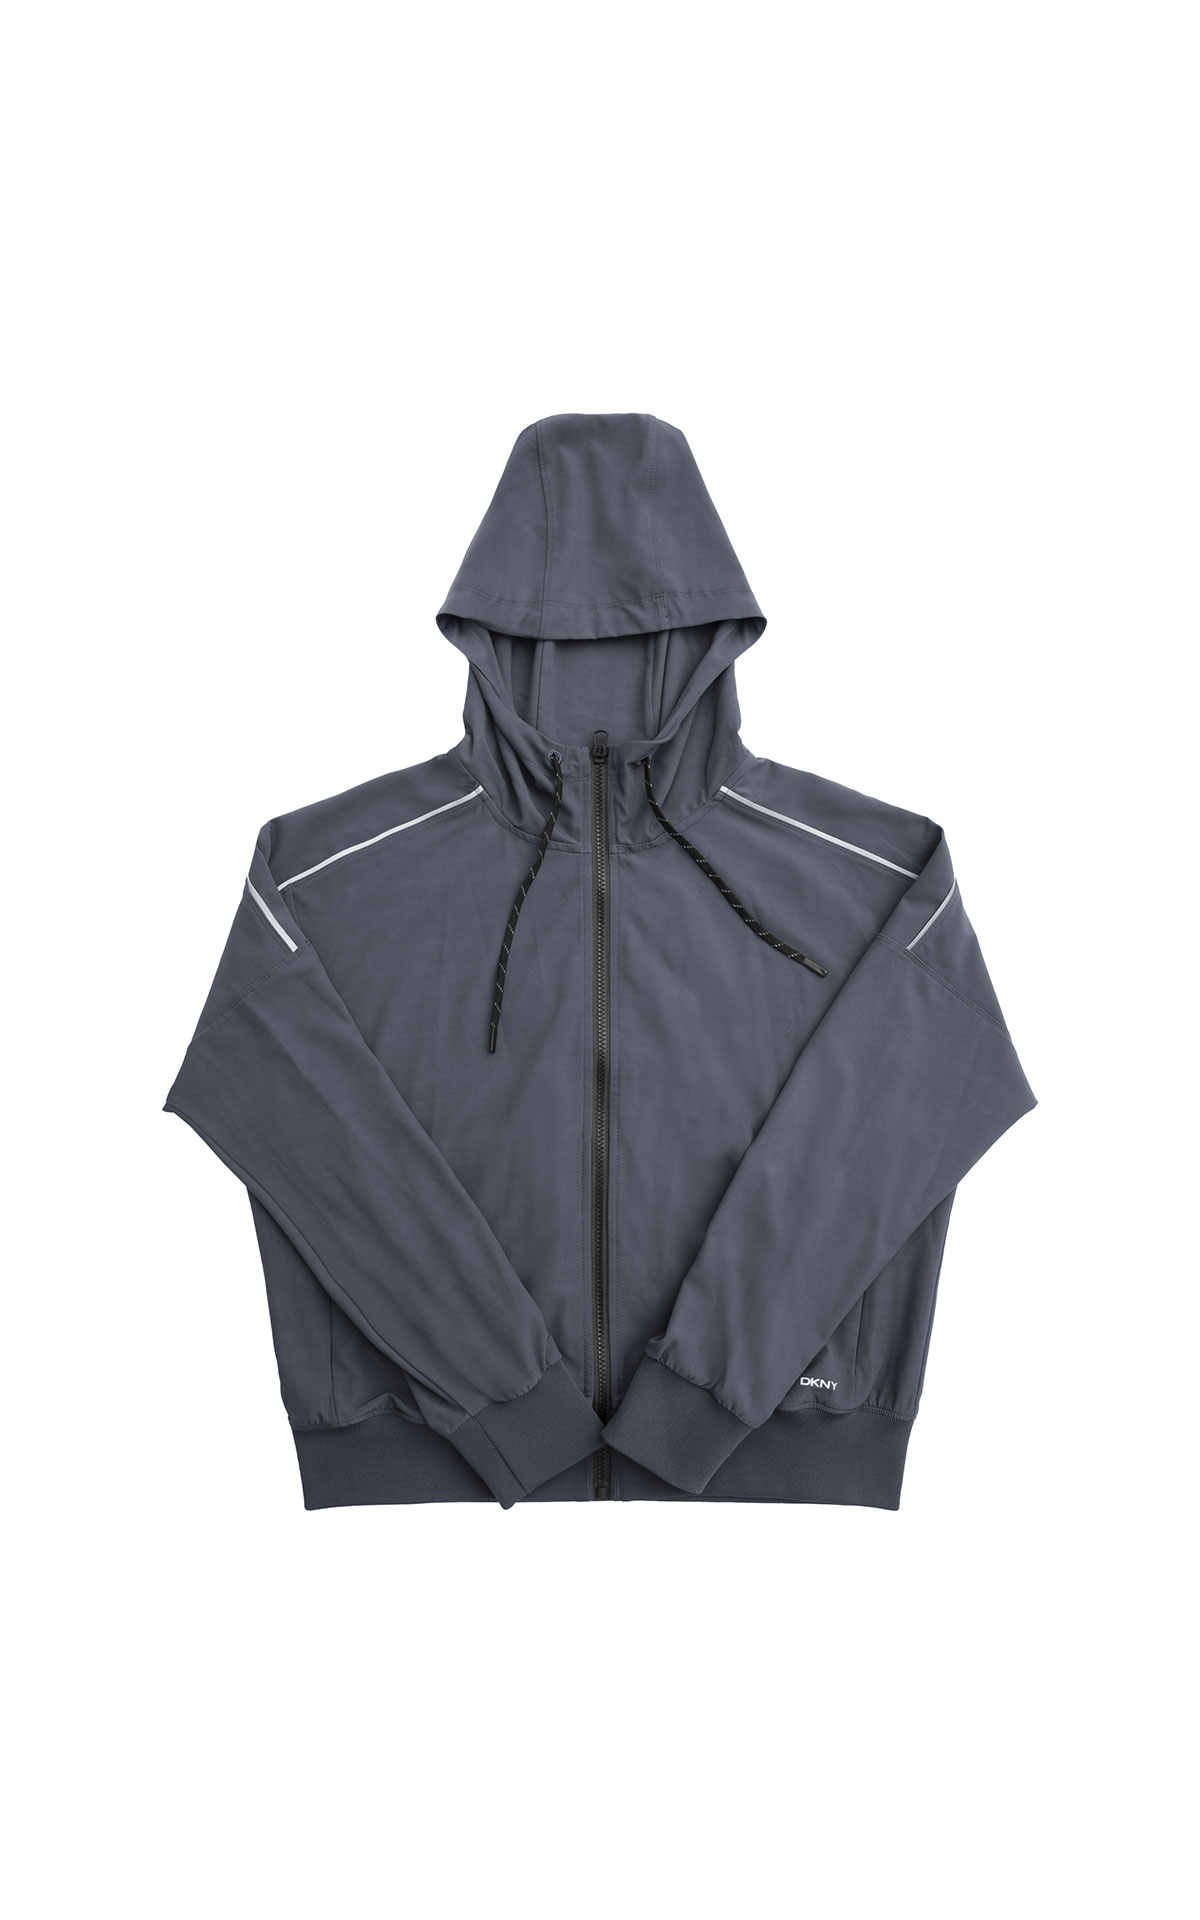 DKNY Hooded Zip jacket with Reflective Piping from Bicester Village